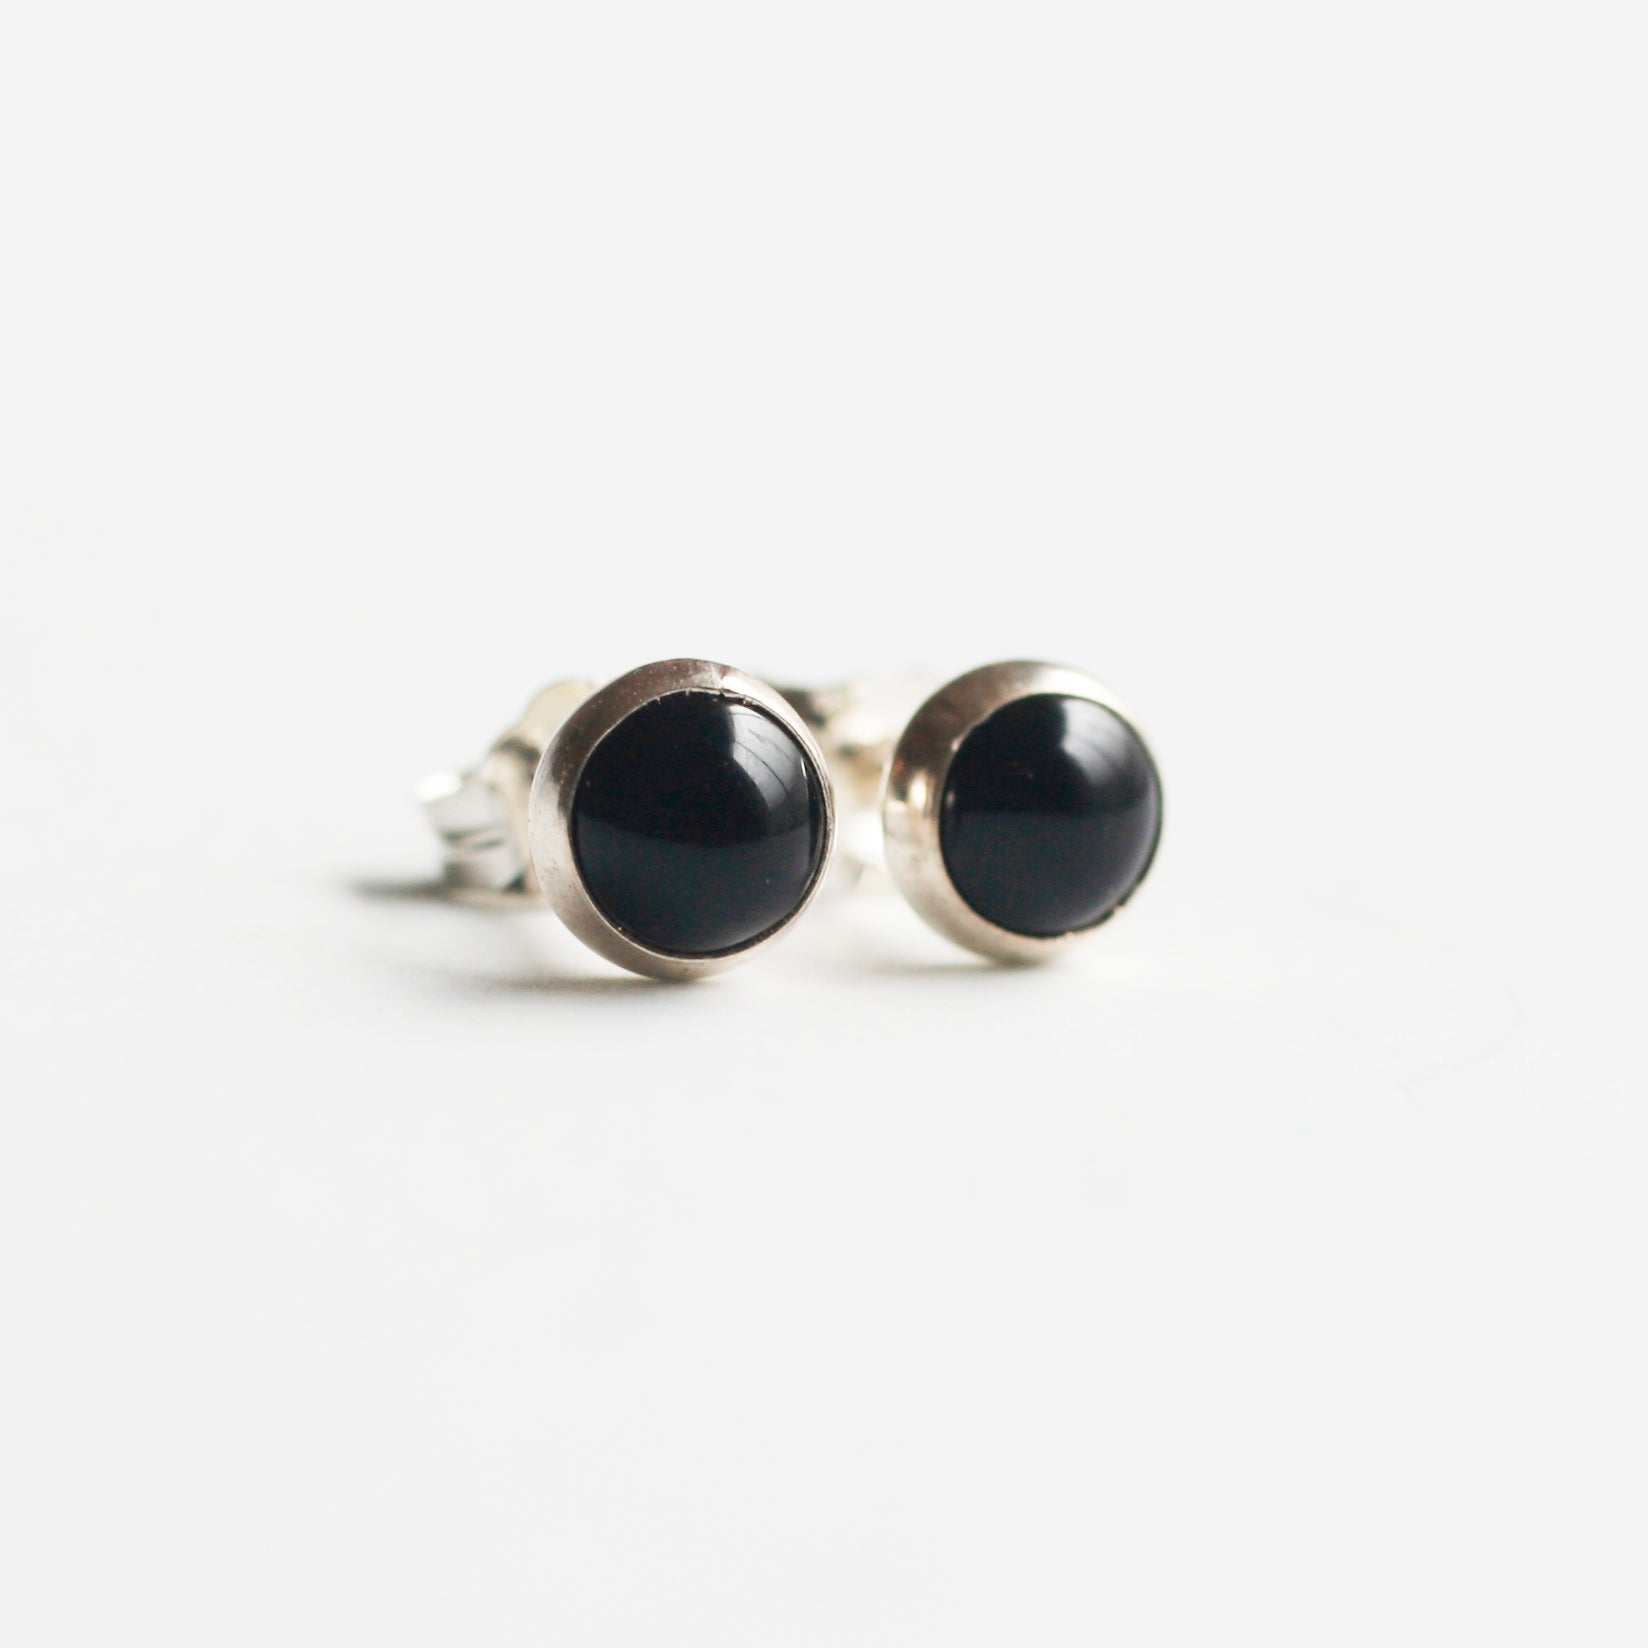 sterling silver 5mm black onyx stud earrings for women or for men